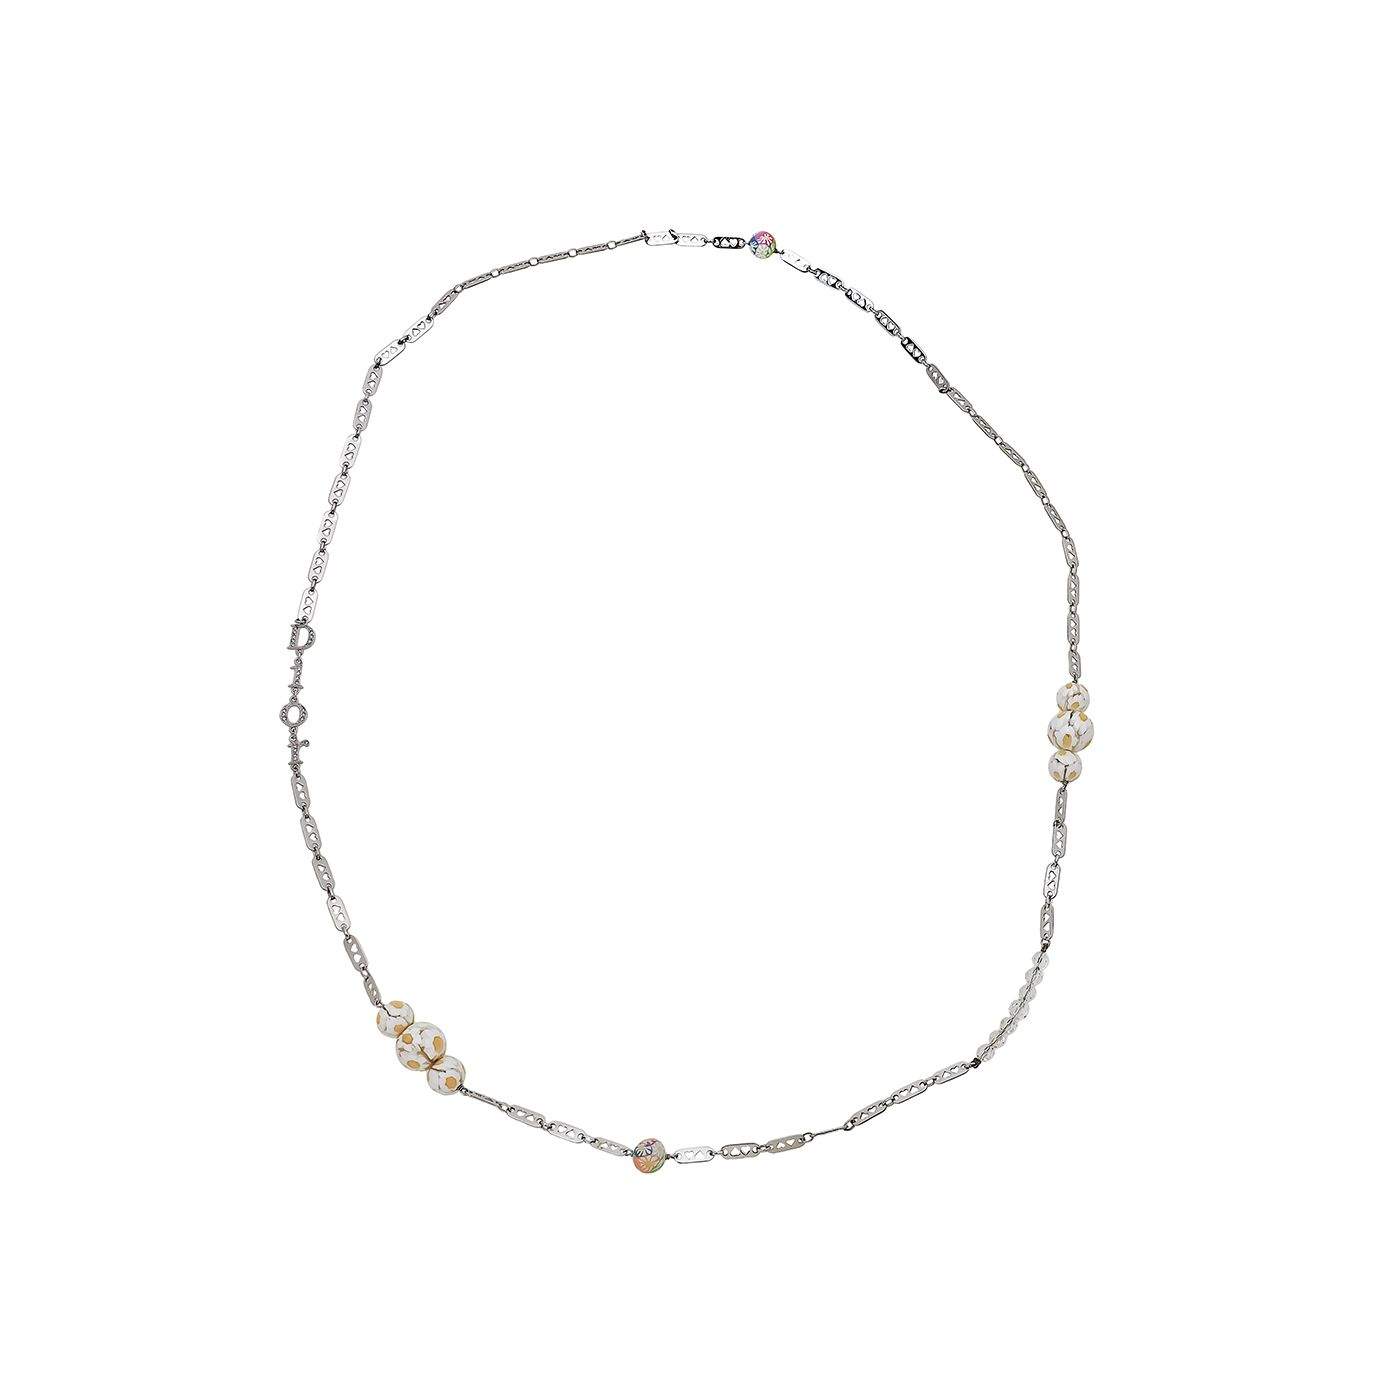 Christian Dior Heart Link Chain W/ Flower Resin Long Necklace